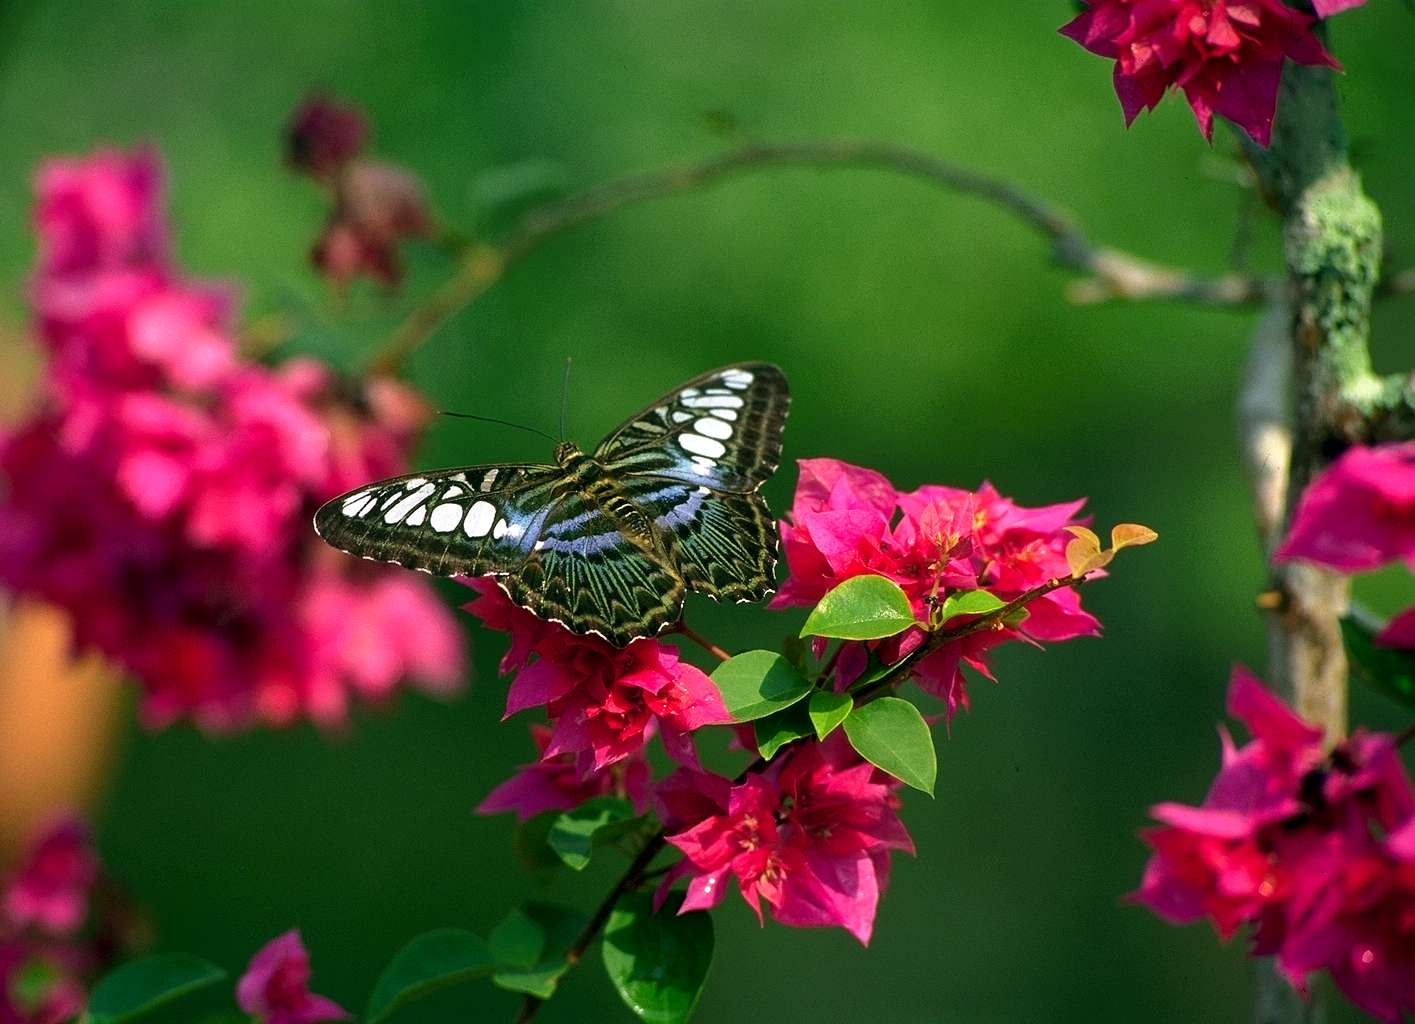 Free Download Flowers For Flower Lovers Flowers Butterfly Natural Beauty Desktop 1415x1024 For Your Desktop Mobile Tablet Explore 49 Beautiful Nature Wallpaper Flowers Flower Desktop Wallpaper Pretty Summer Flower